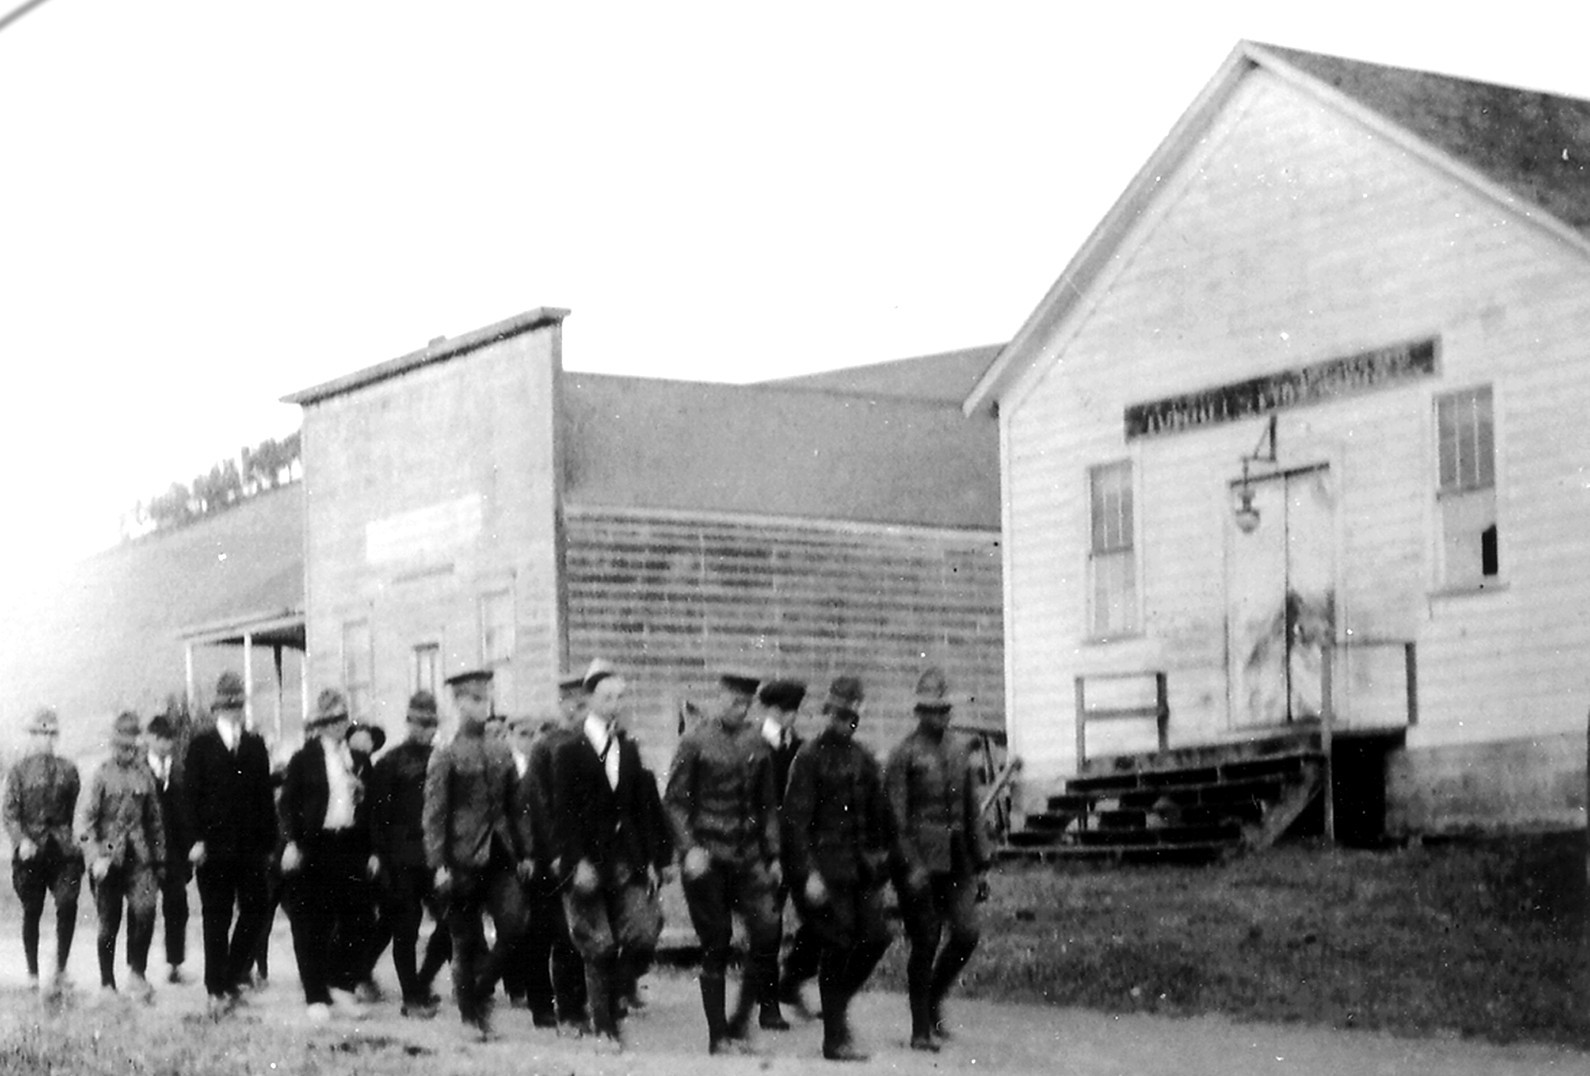 WWI ROTC soldiers 1917 in front of original Hall.